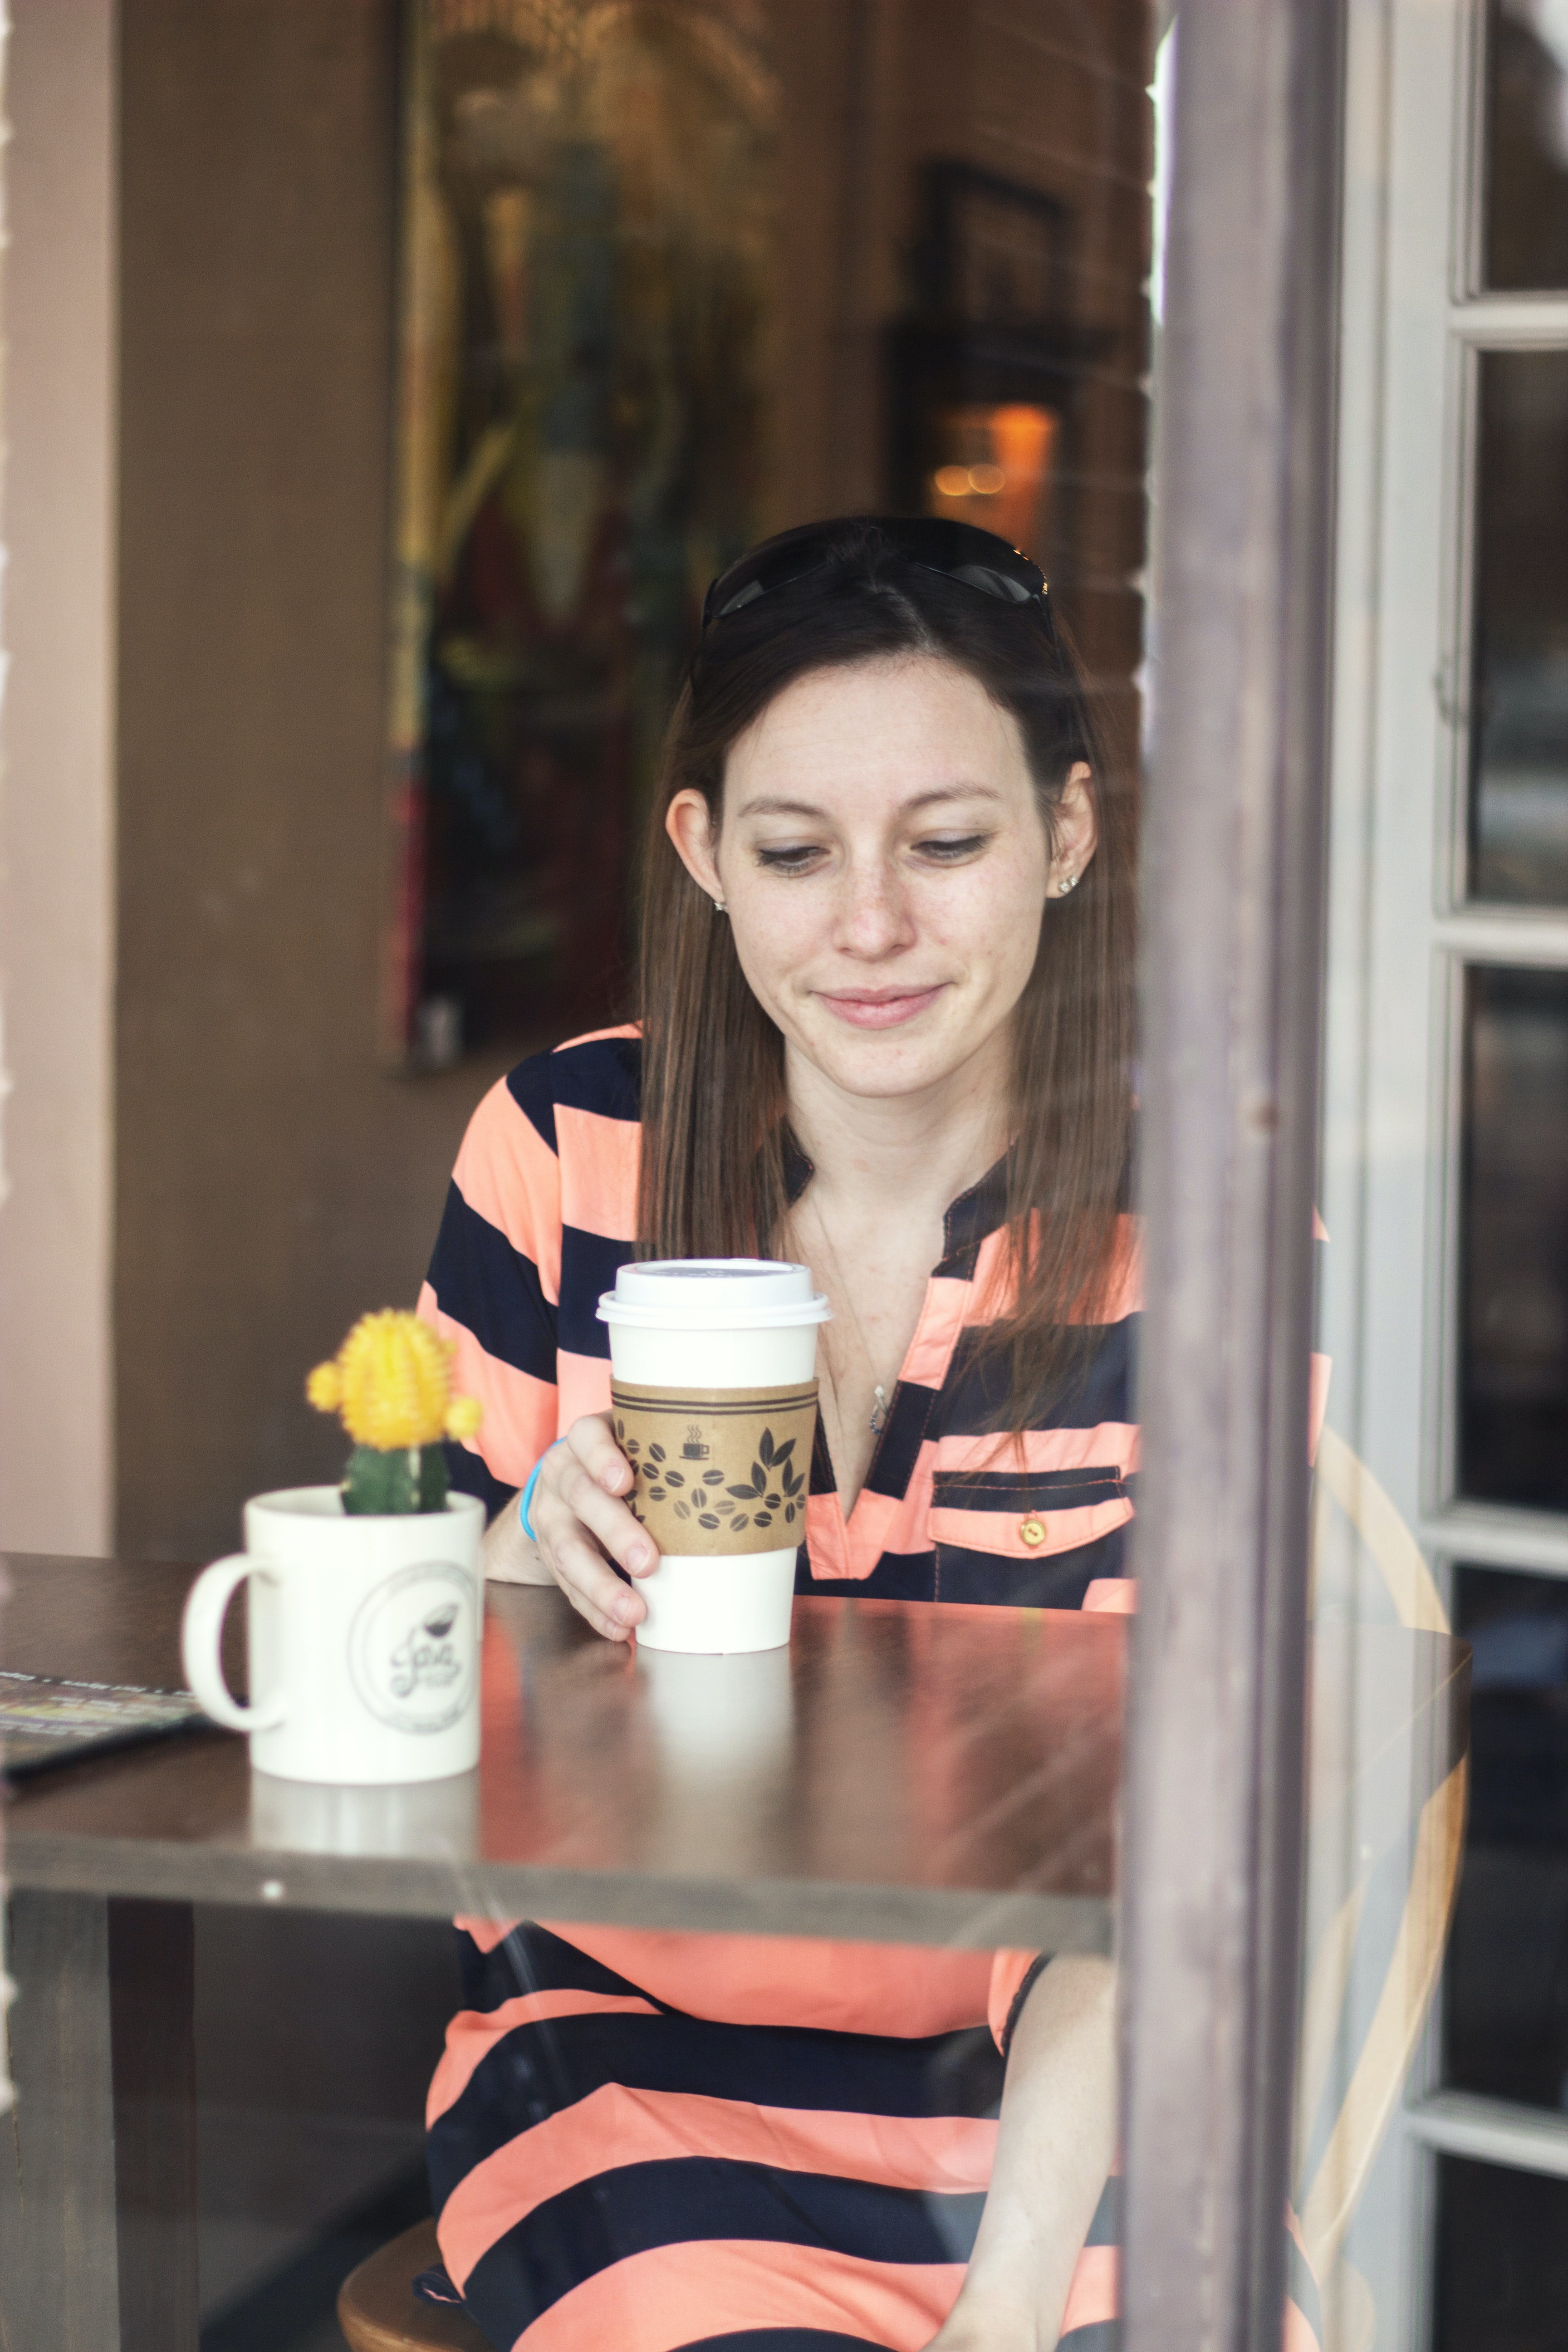 woman sitting down at table looking at cup in hand